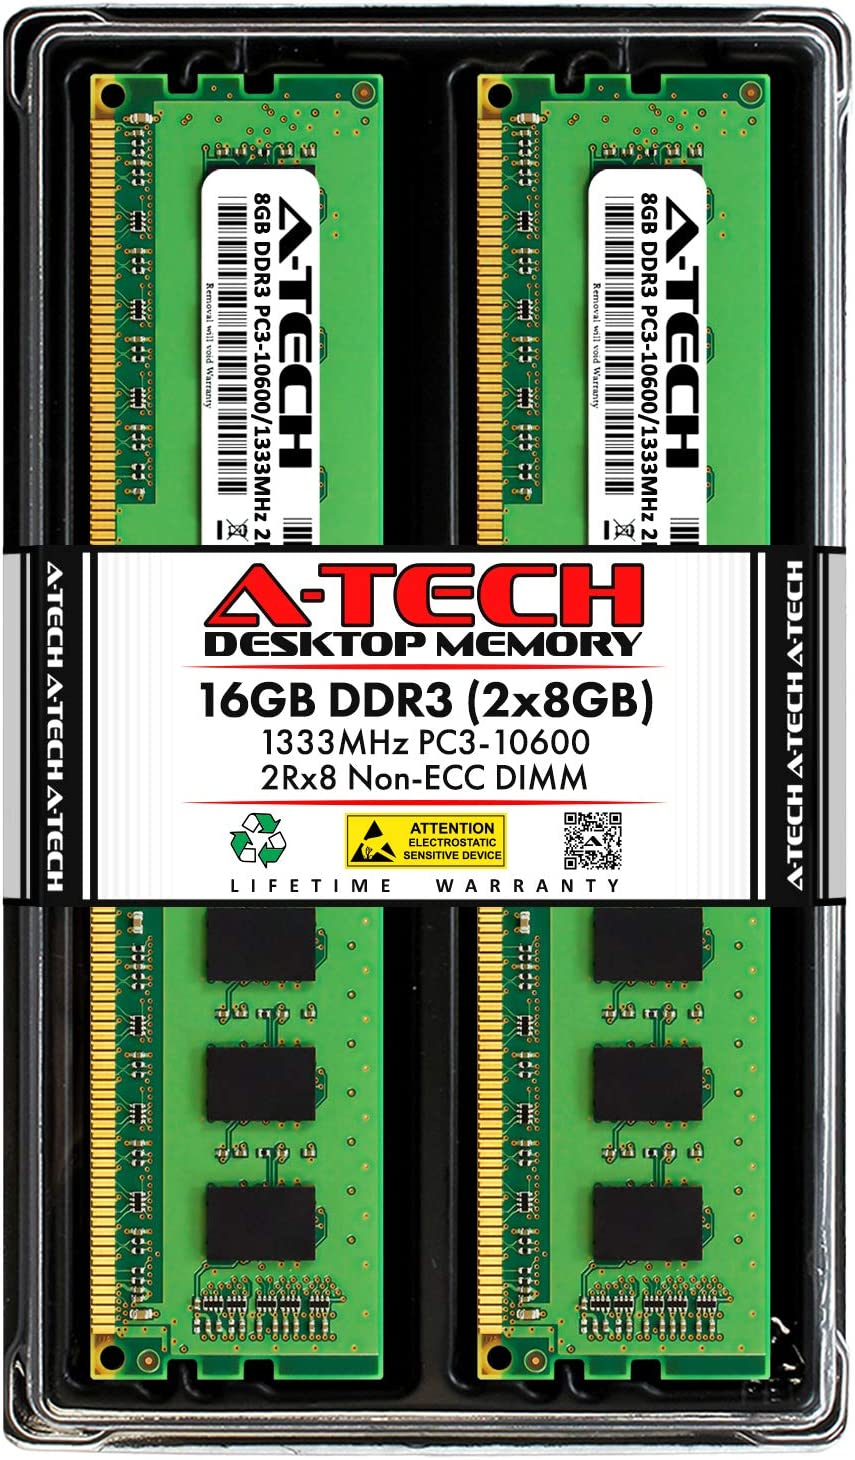 A-Tech 16GB (2x8GB) DDR3 1333MHz DIMM PC3-10600 2Rx8 Dual Rank 1.5V CL9 240-Pin Non-ECC UDIMM Desktop RAM Memory Upgrade Kit